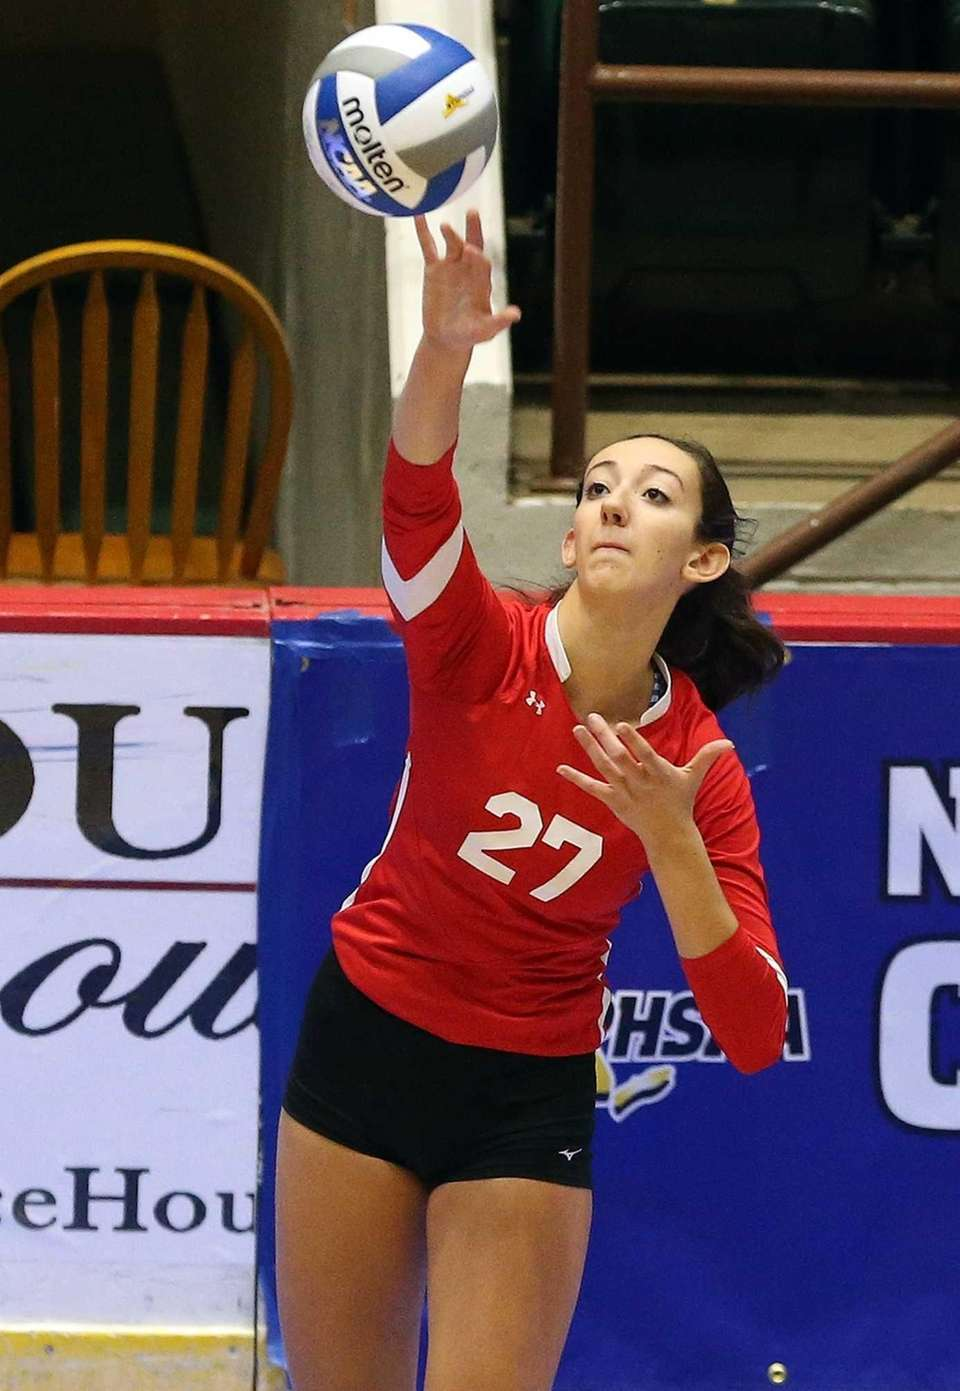 Connetquot's Cassandra Patsos with the serve during the